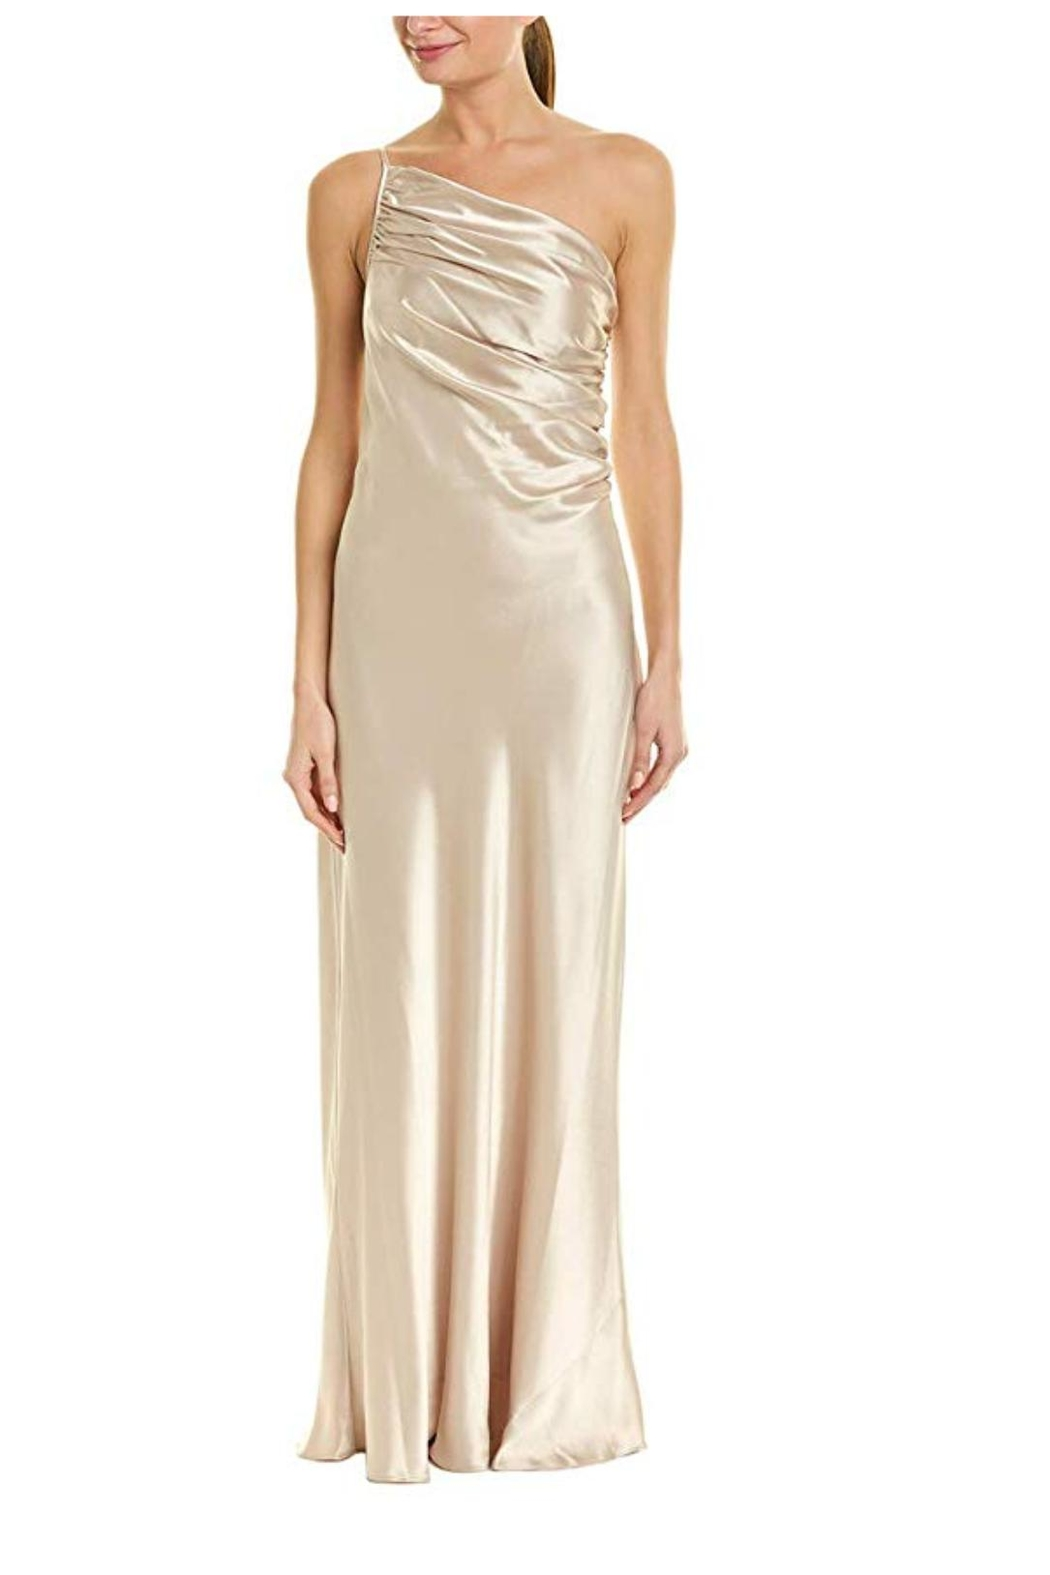 Issue New York Satin Beige Gown - Main Image